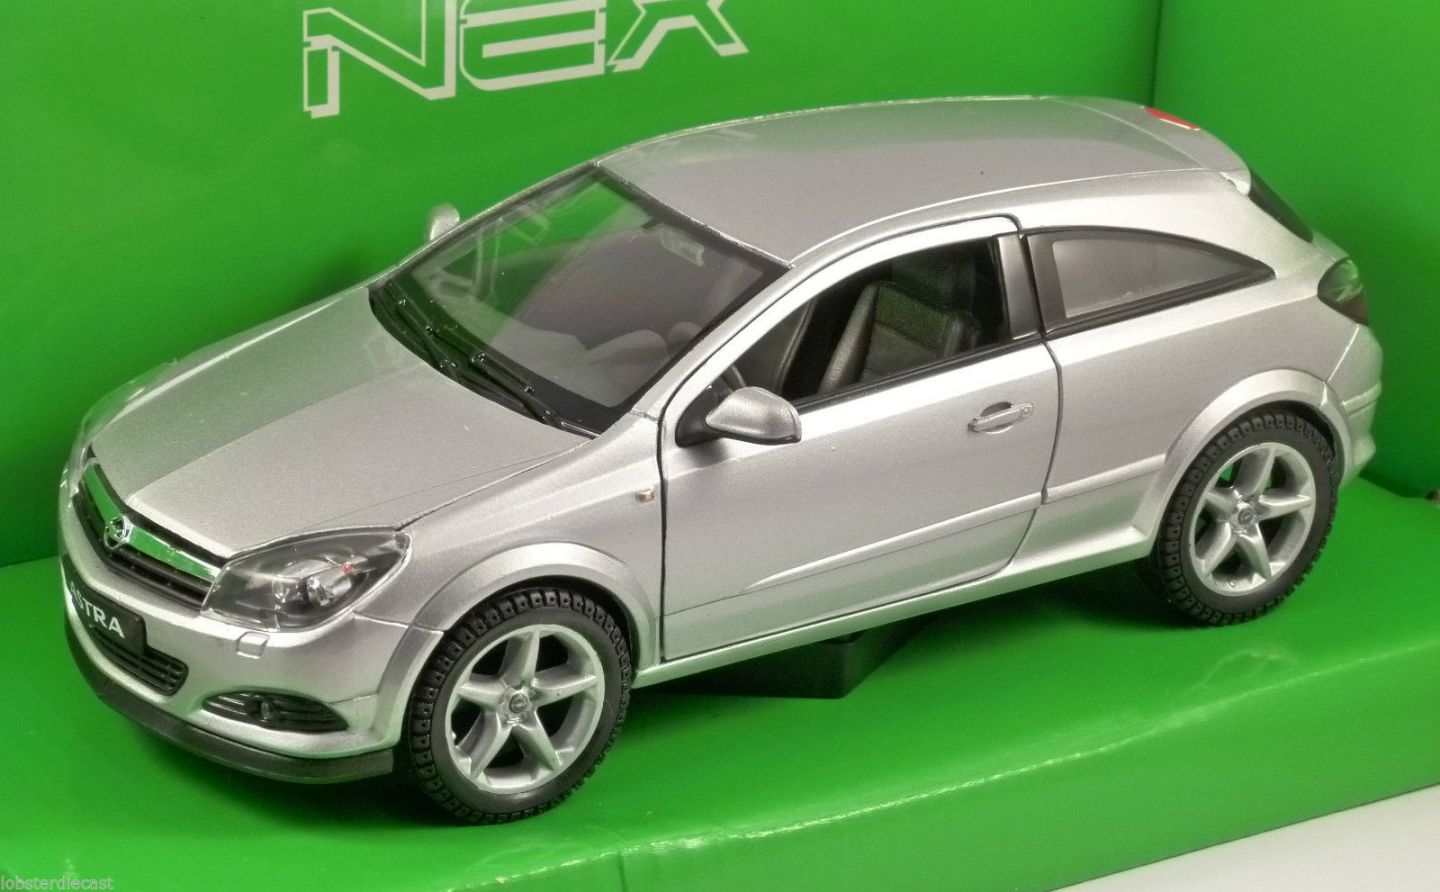 2005 opel astra gtc 3dr in silver 1 24 scale model by welly. Black Bedroom Furniture Sets. Home Design Ideas